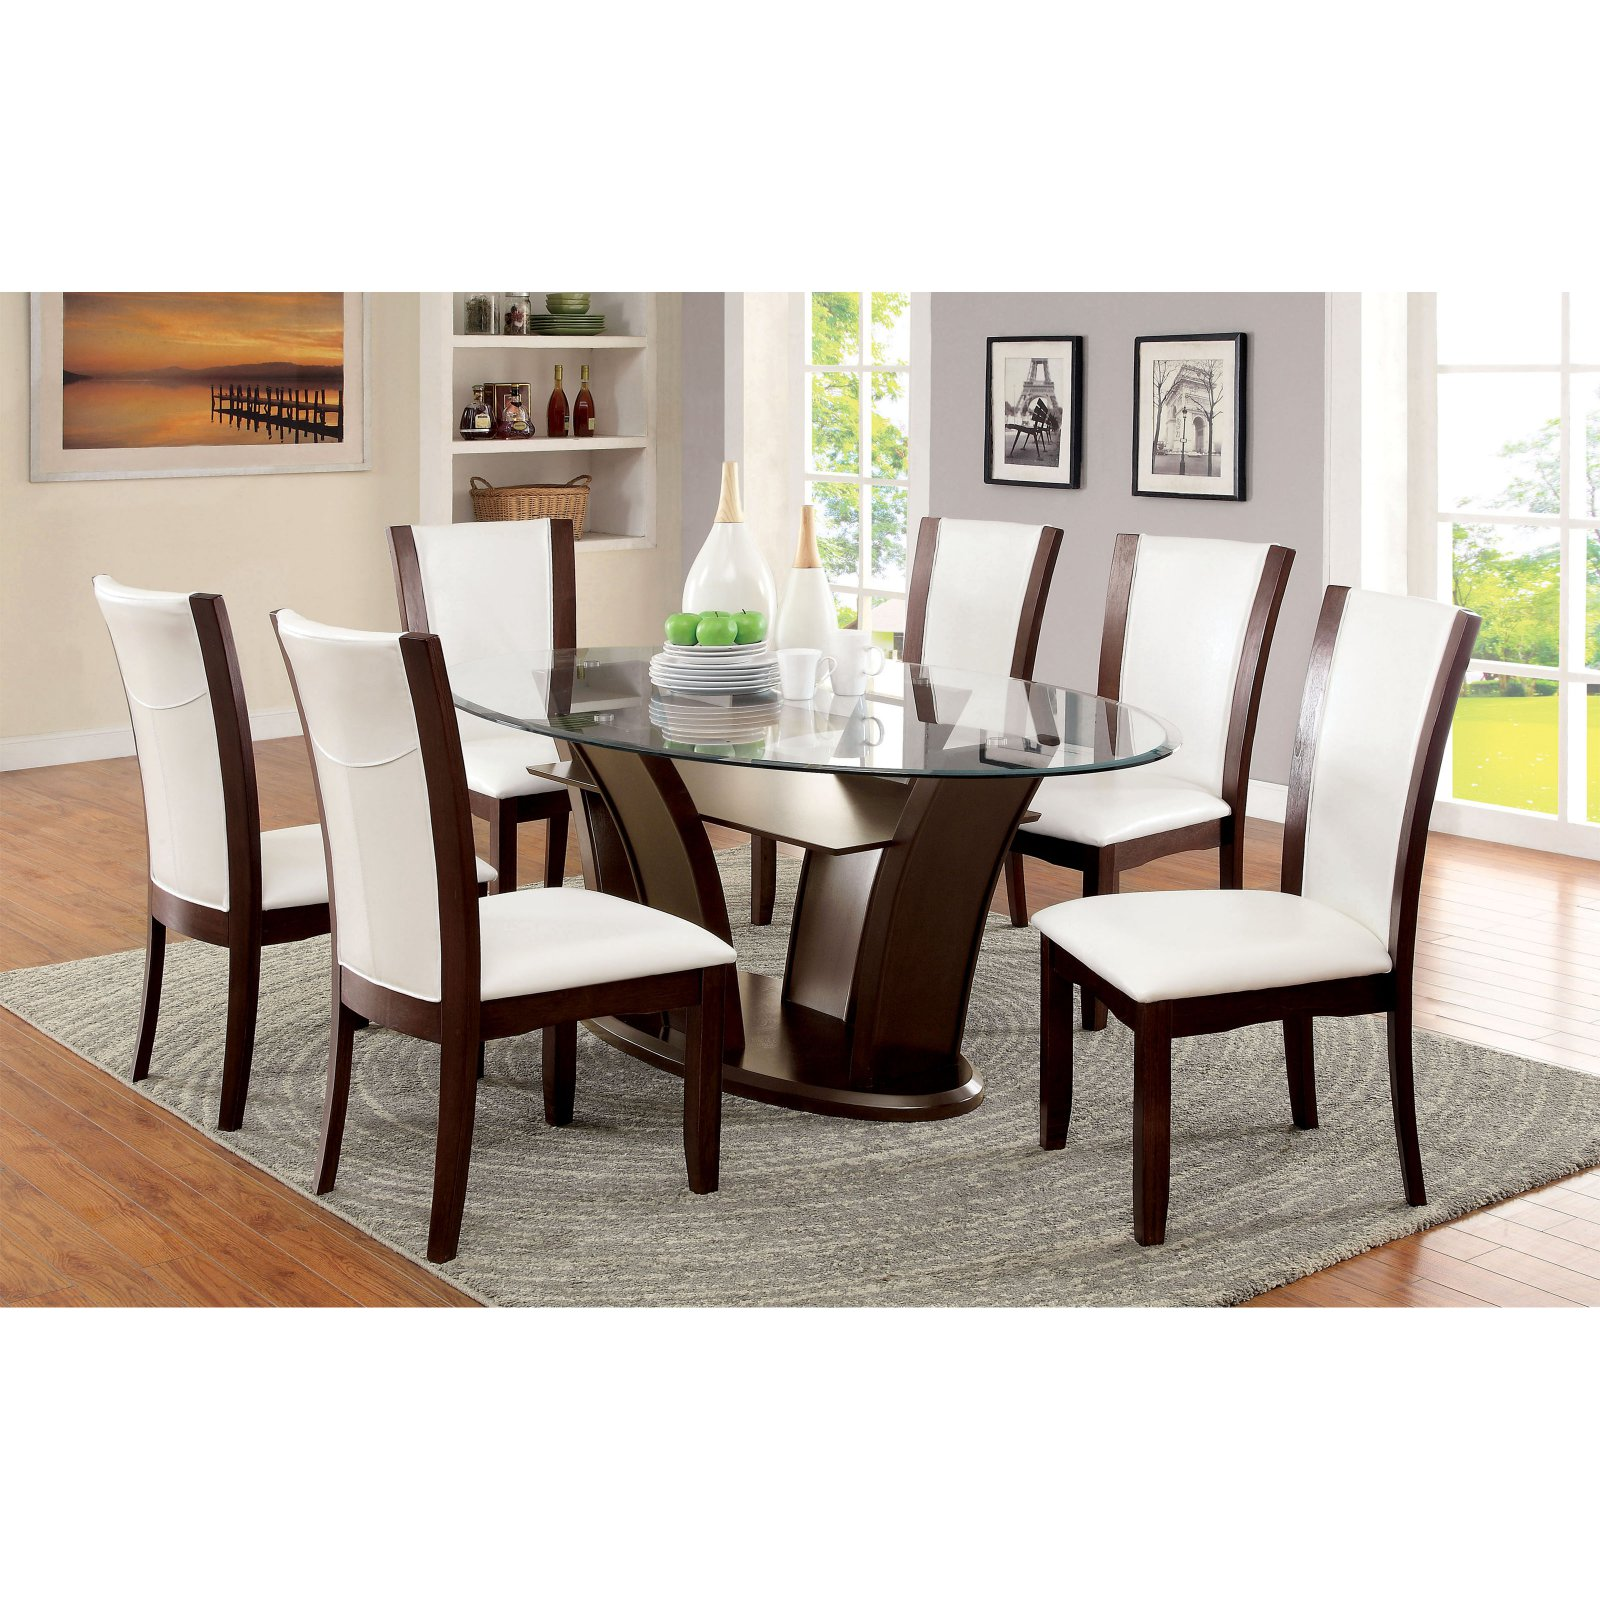 Furniture Of America Lavelle Tempered Glass Top Dining Table